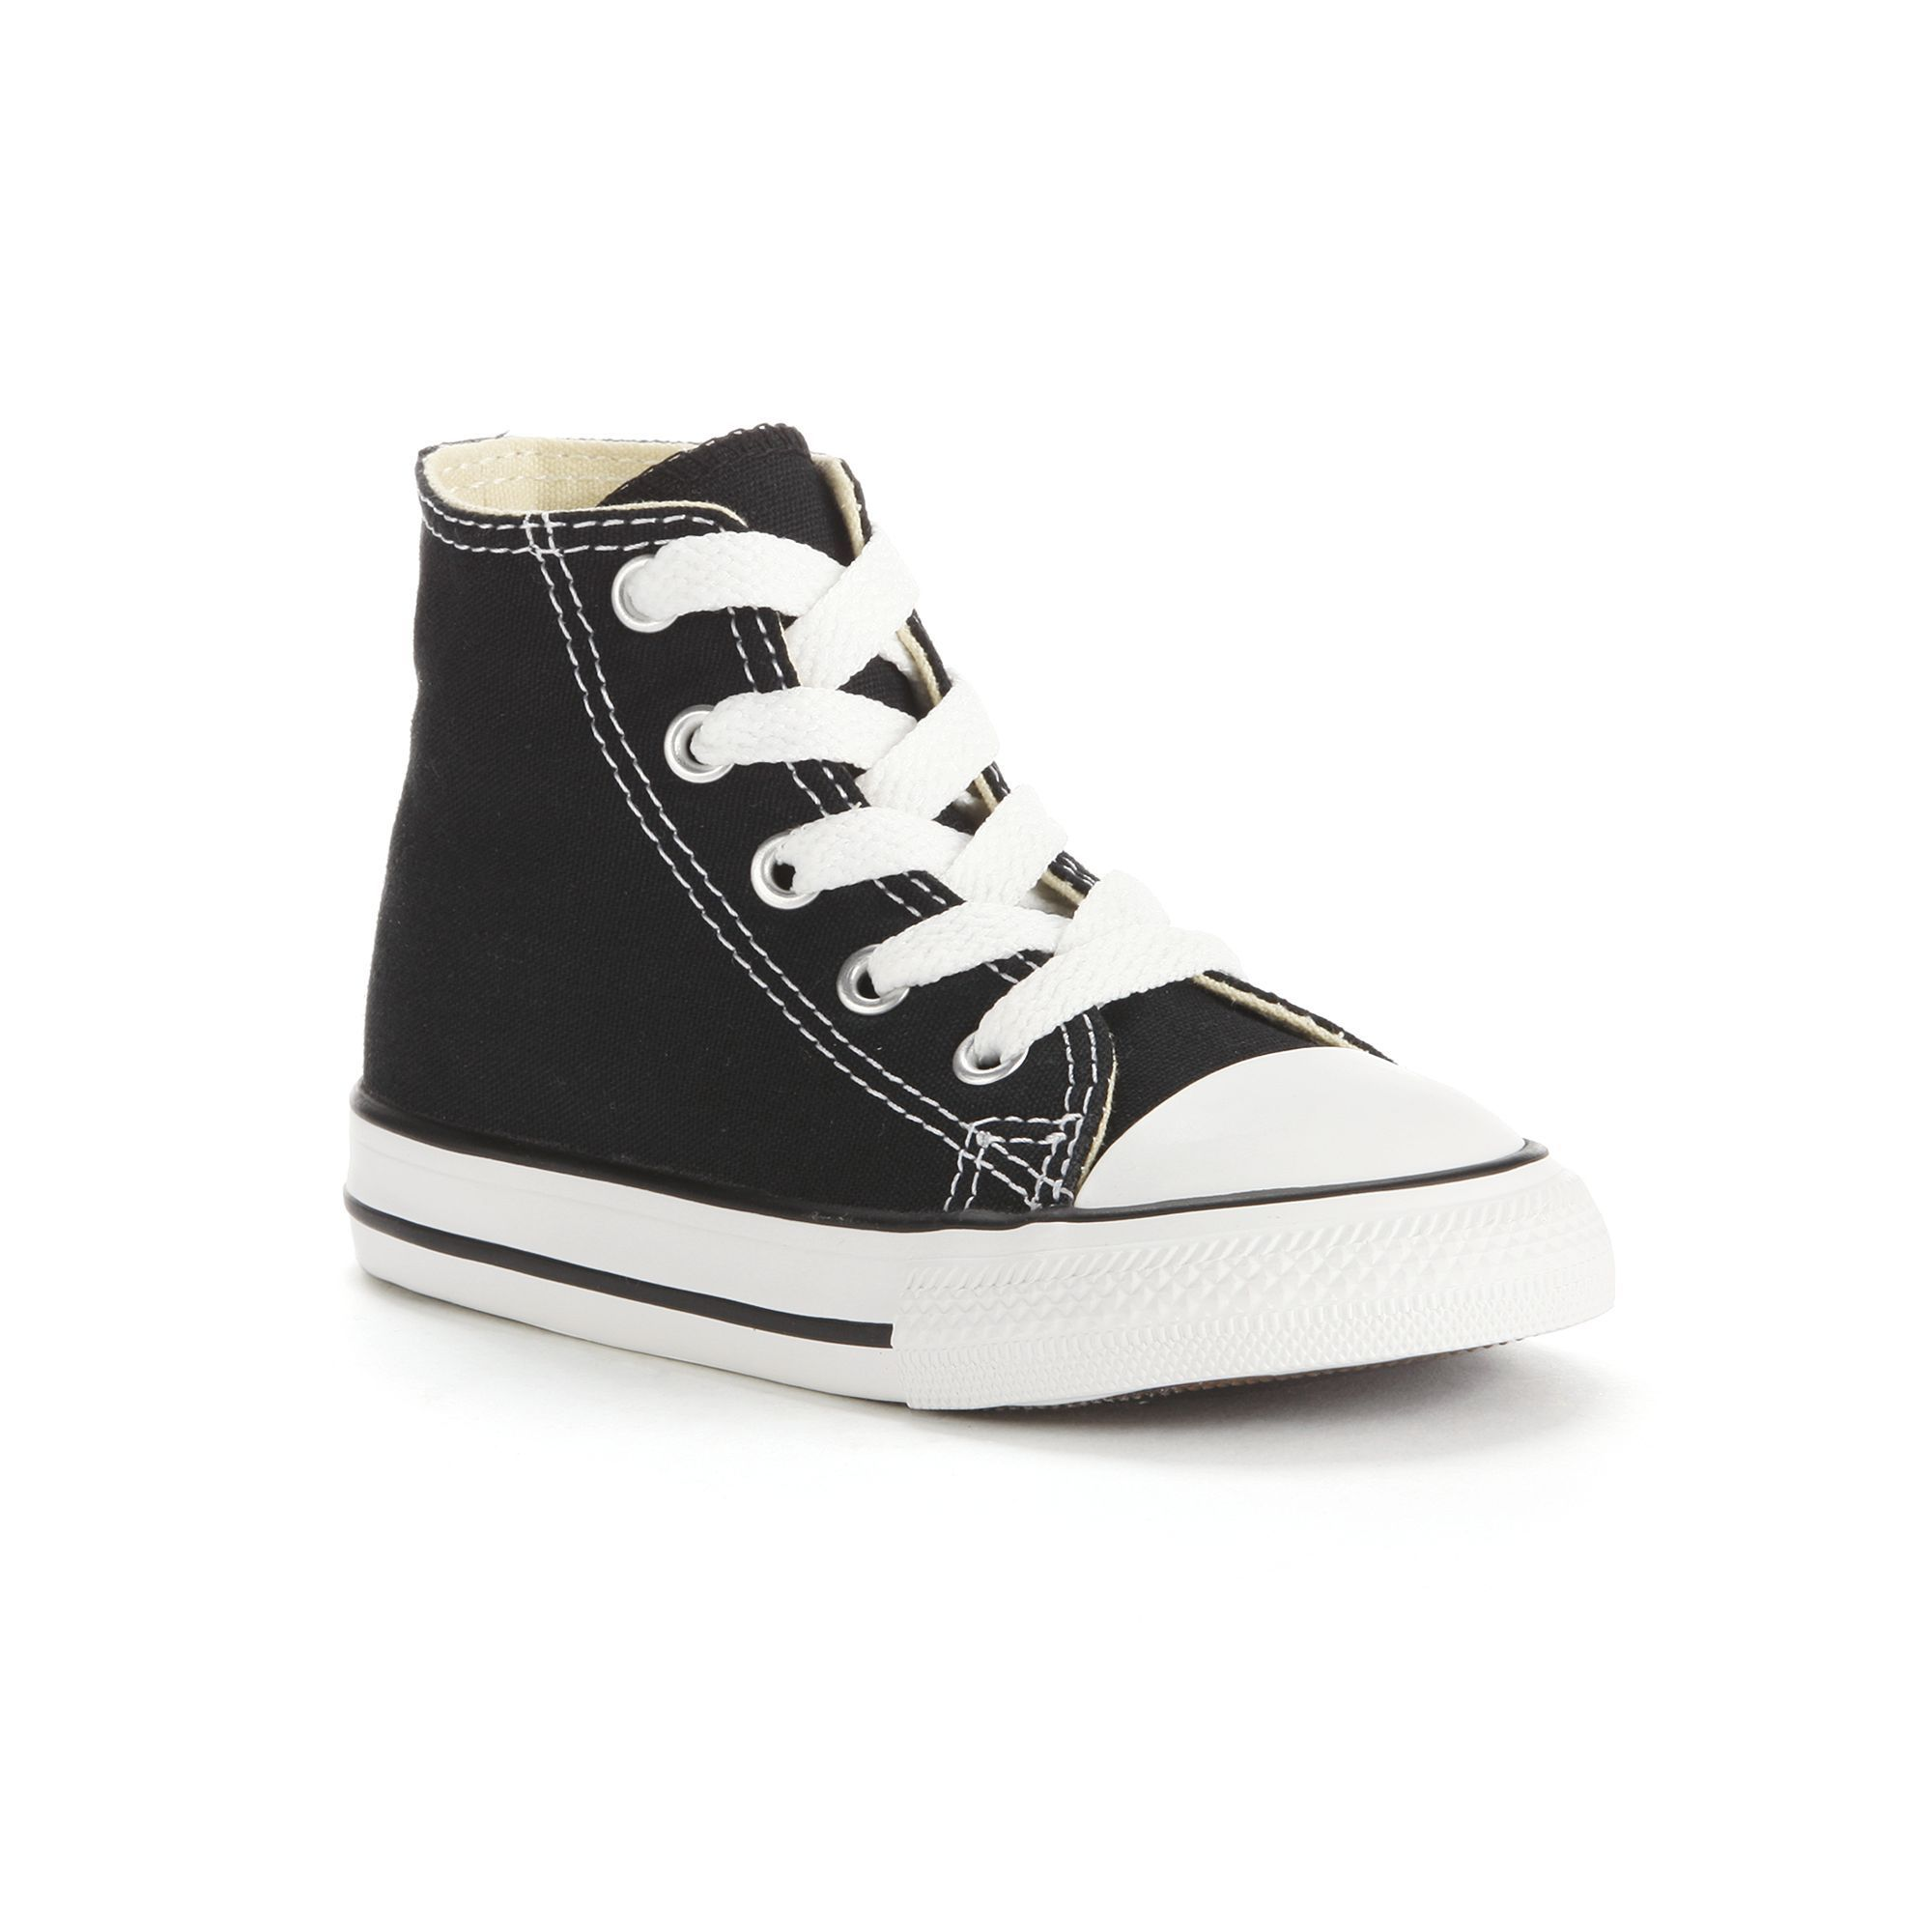 2e44738b402 Baby   Toddler Converse Chuck Taylor All Star High-Top Sneakers ...